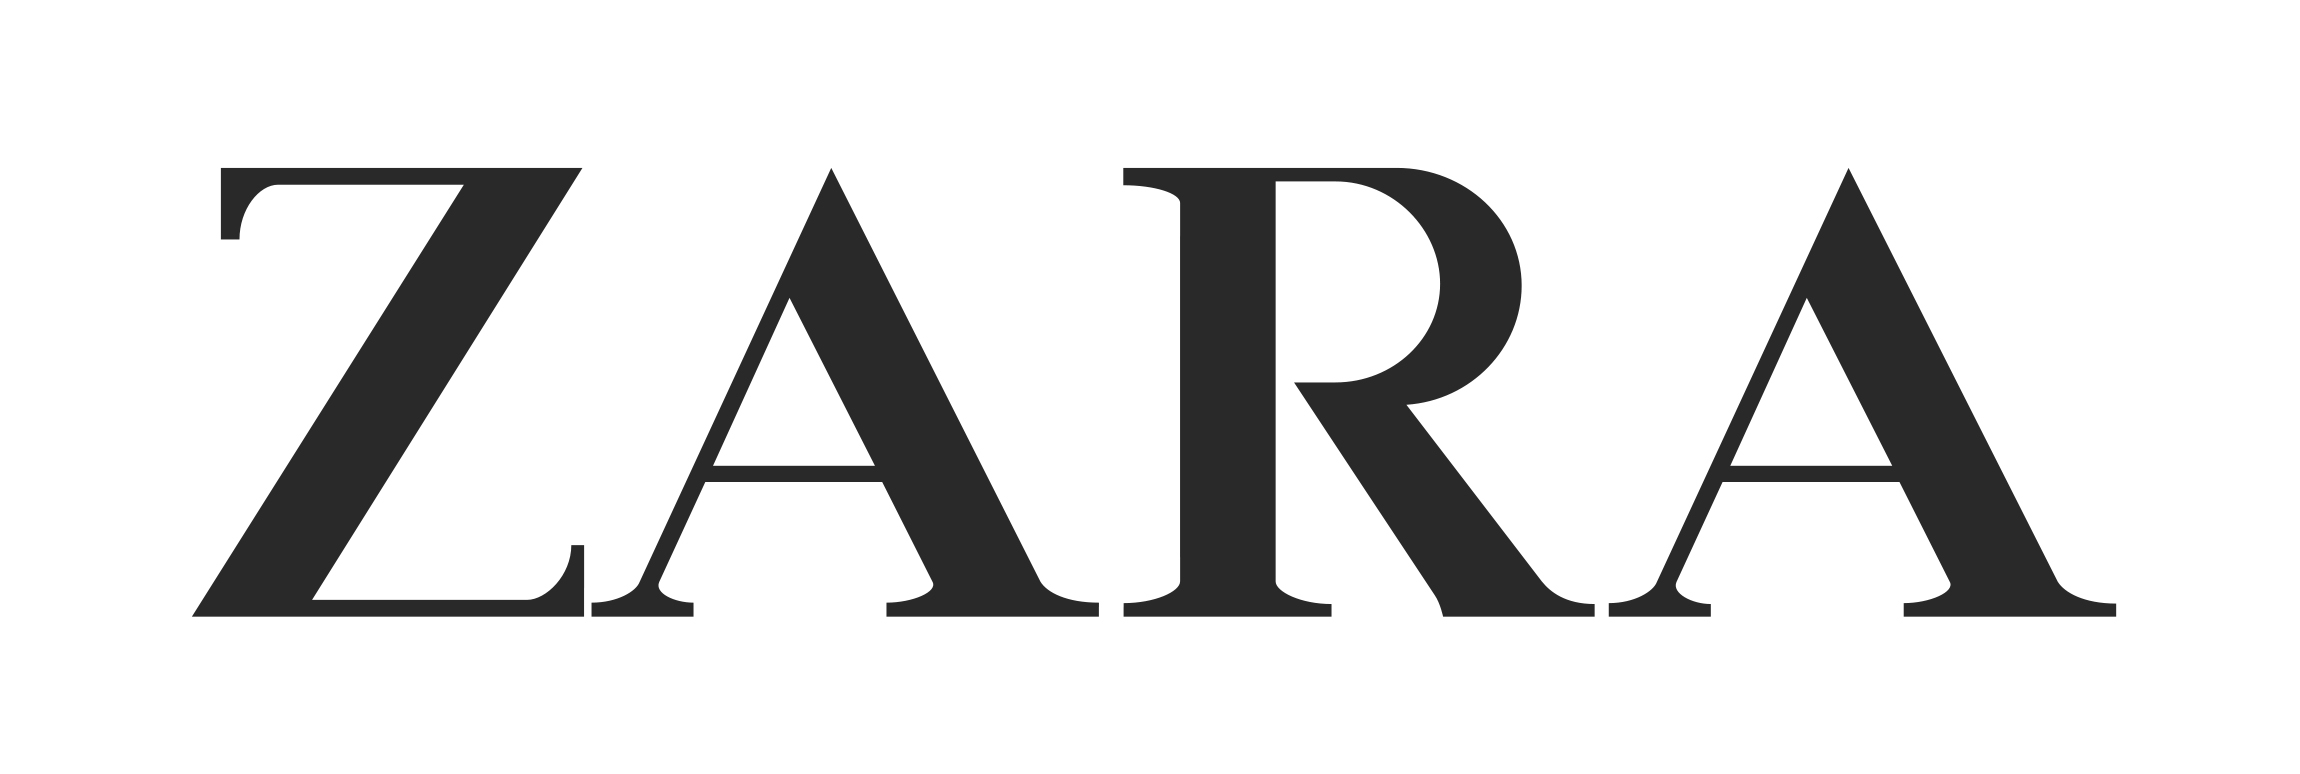 zara ressources Zara is all about staying on top of the hottest trends, and exuding an exclusive feel, but its supply chain is the real star of the show these rockstar-level logistics take it from being just another fashion retailer to an industry example of fast fashion done right.